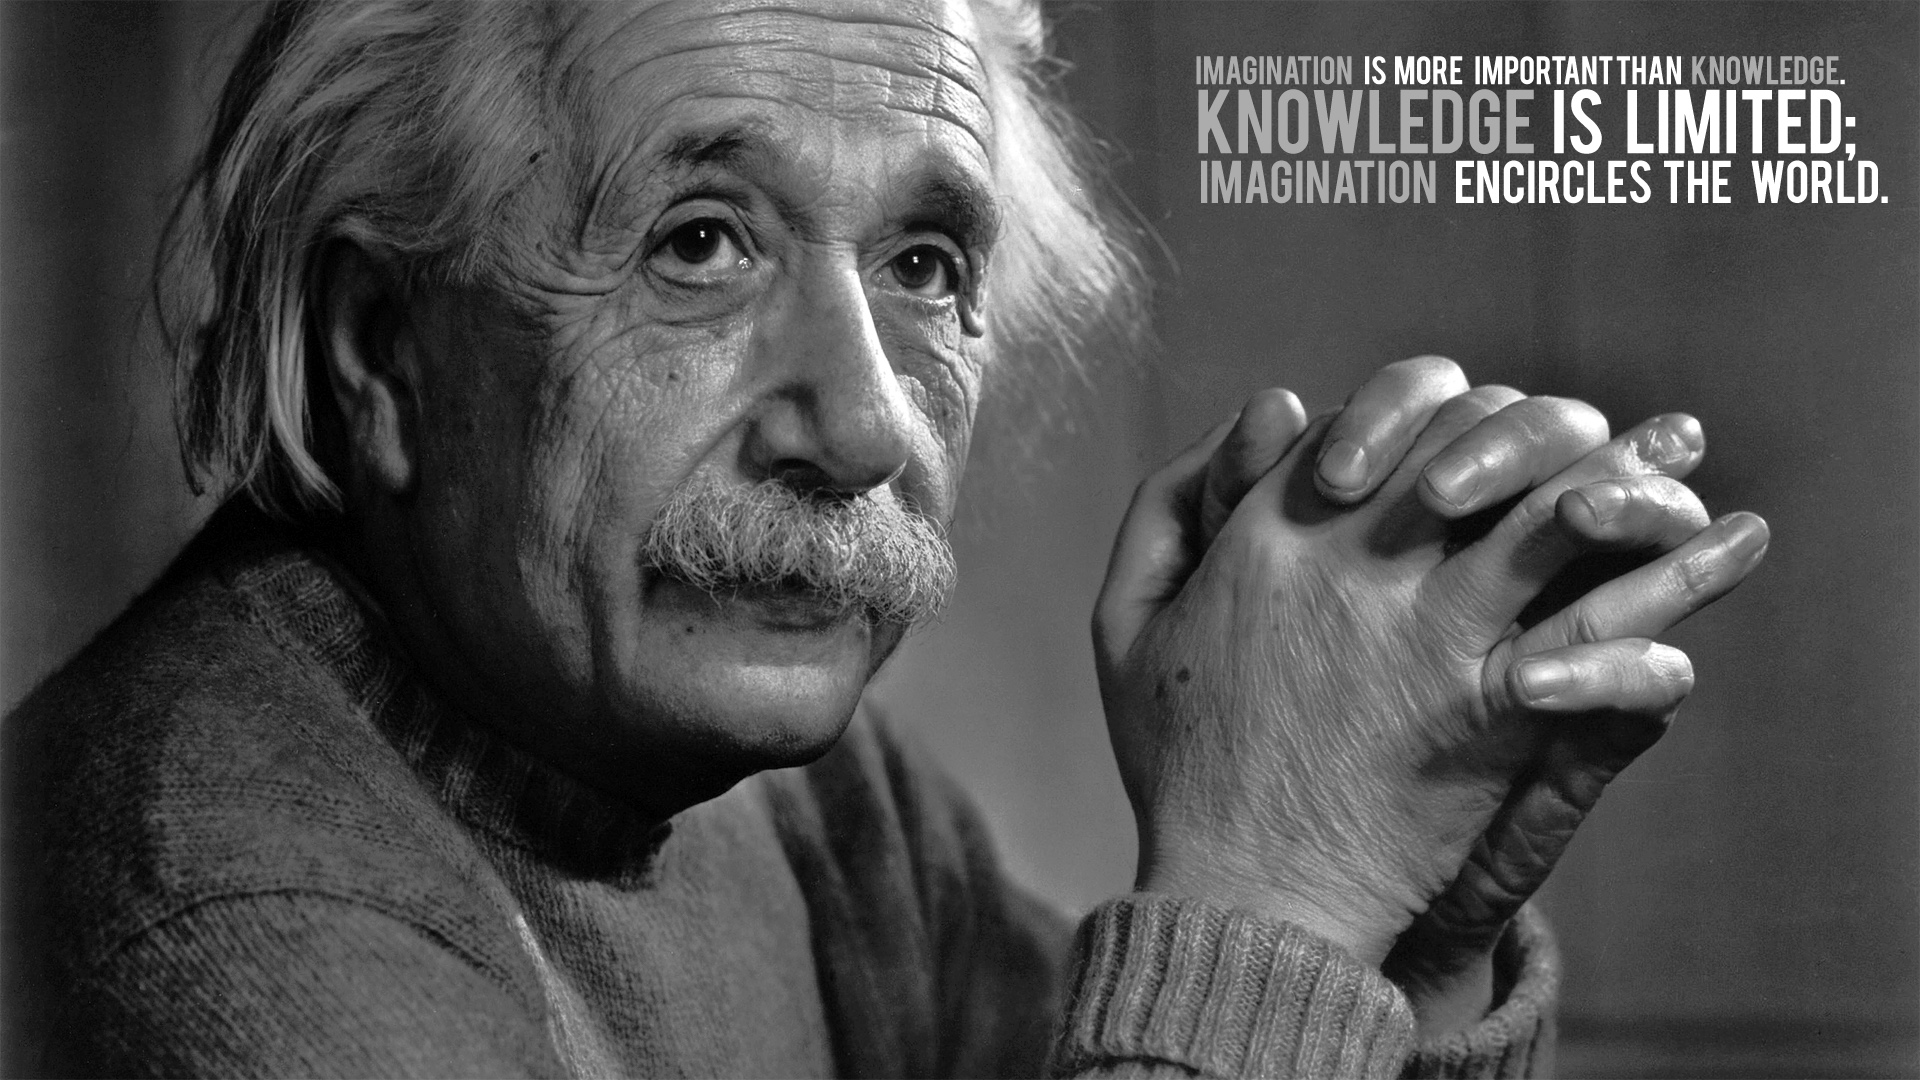 albert einstein catalystinspiration albert einstein quote imagination